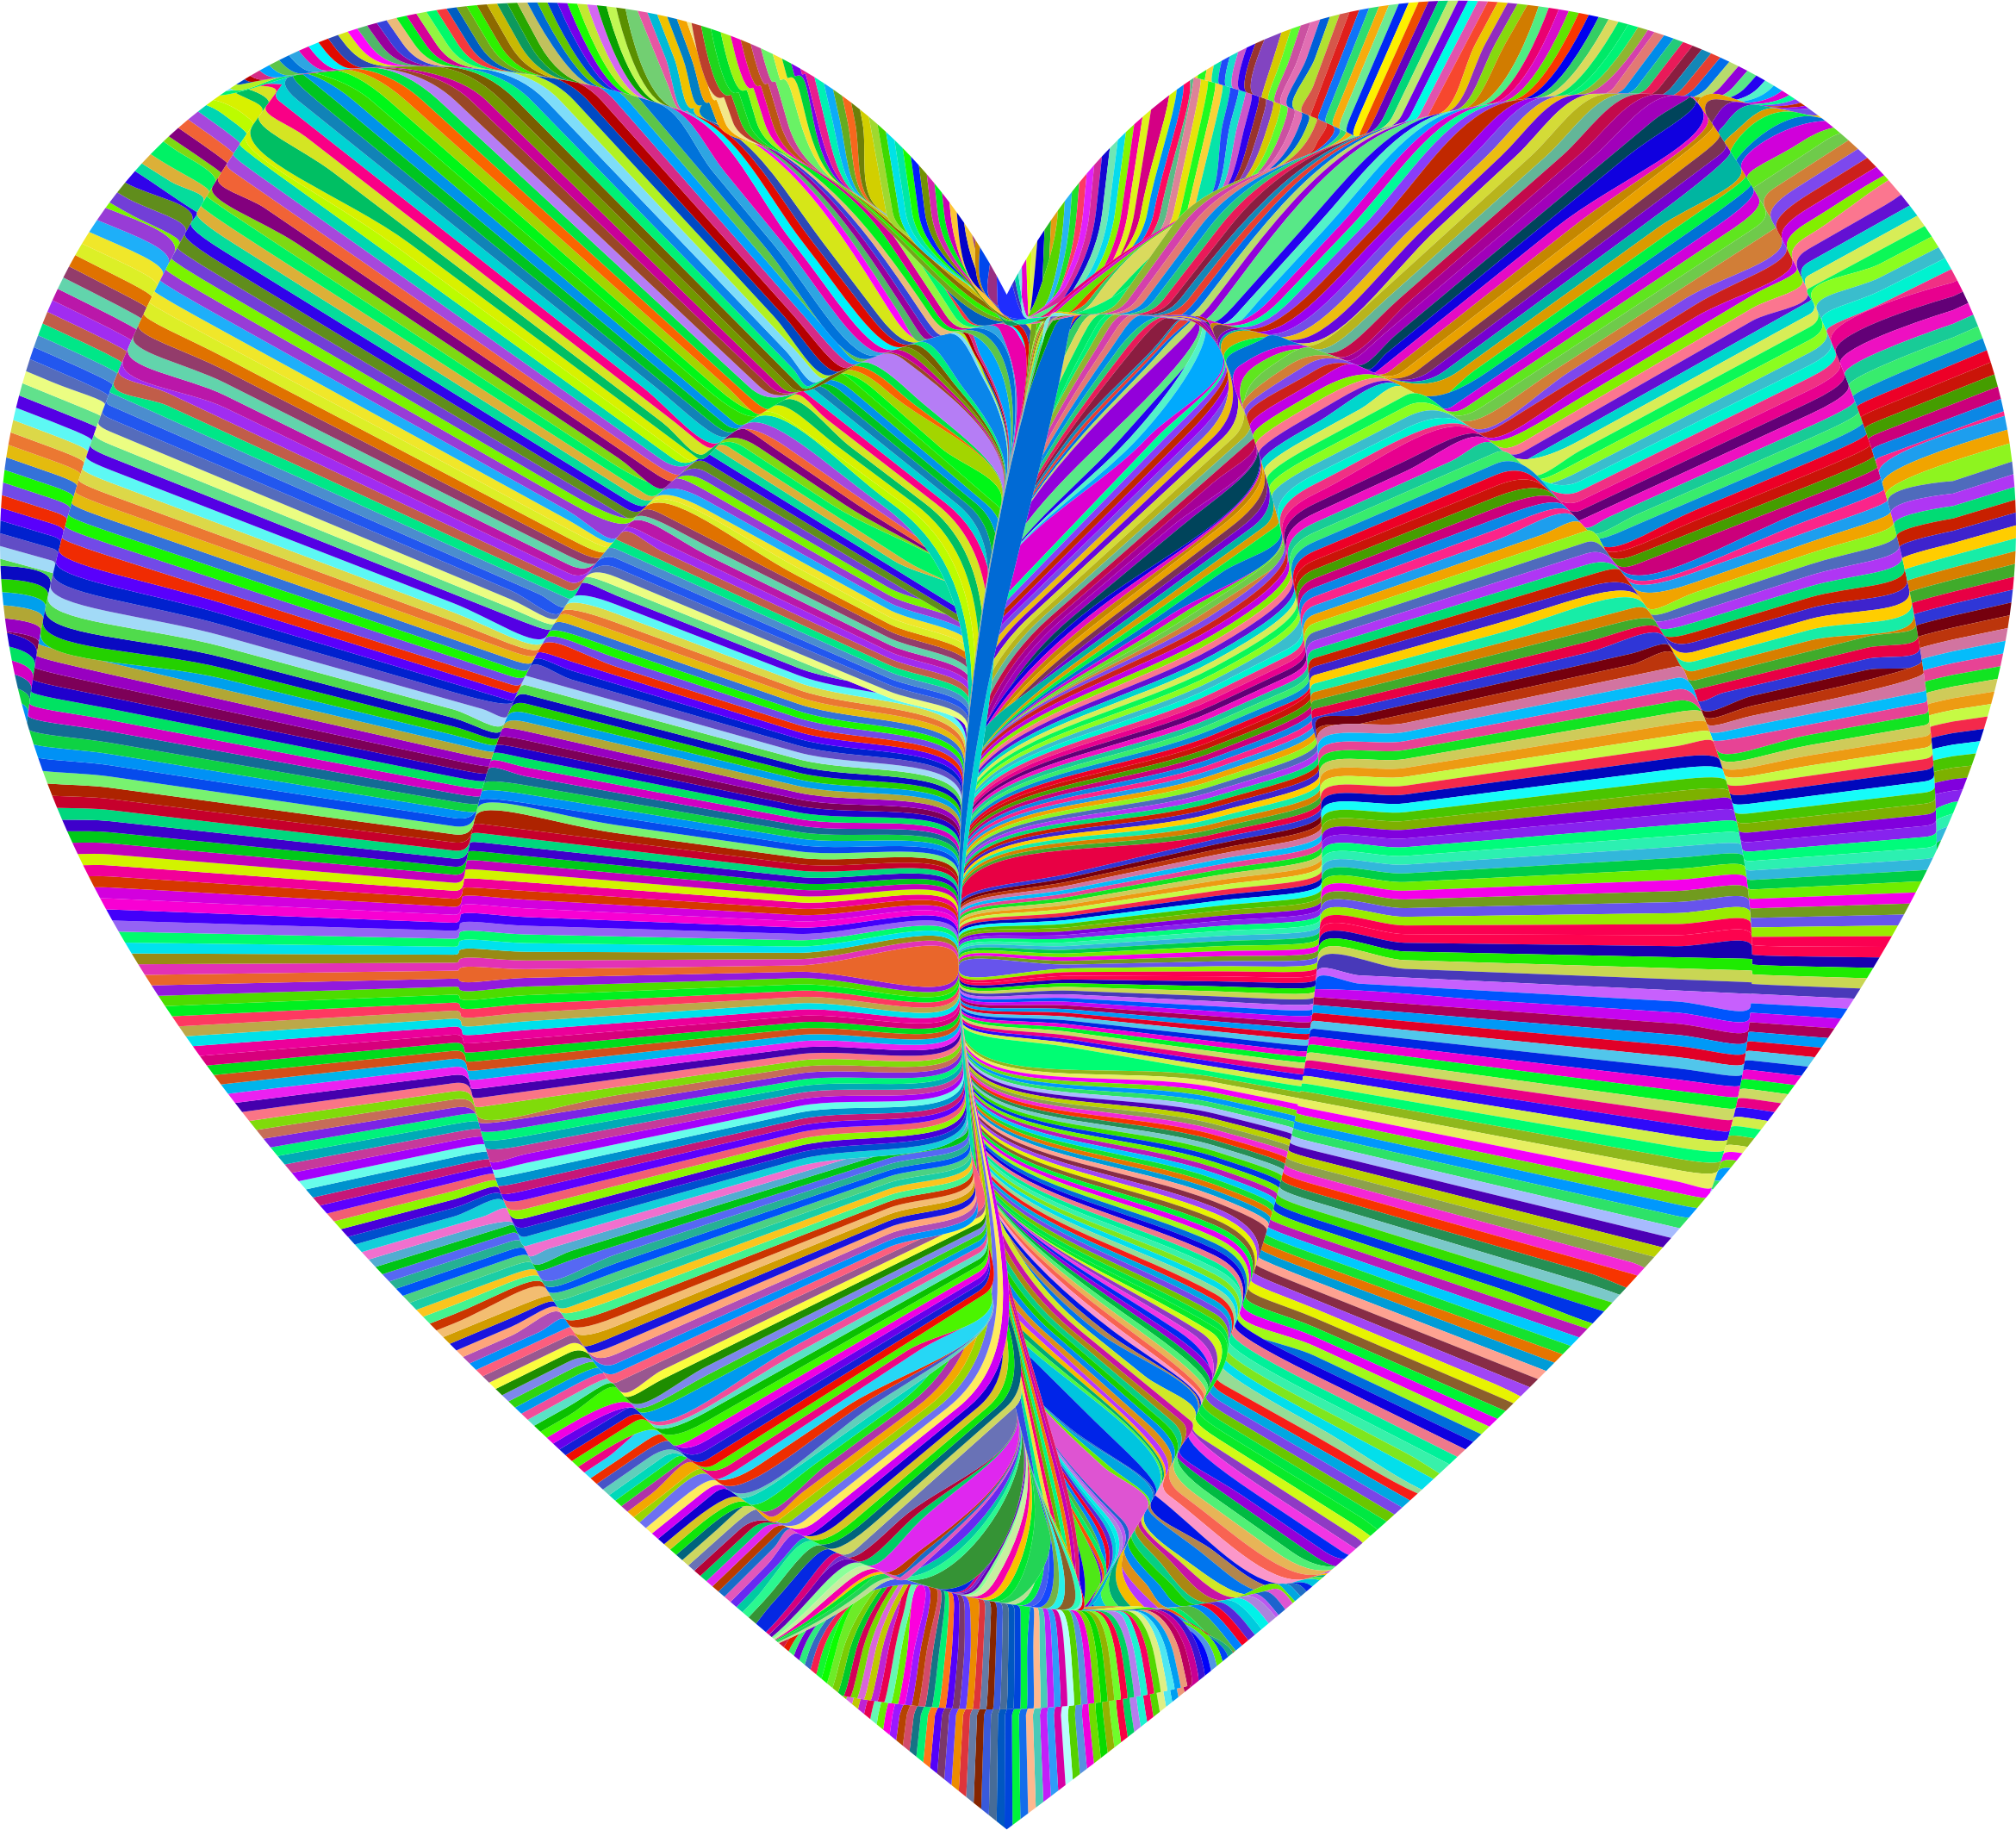 Psychedelic Folds Heart by GDJ